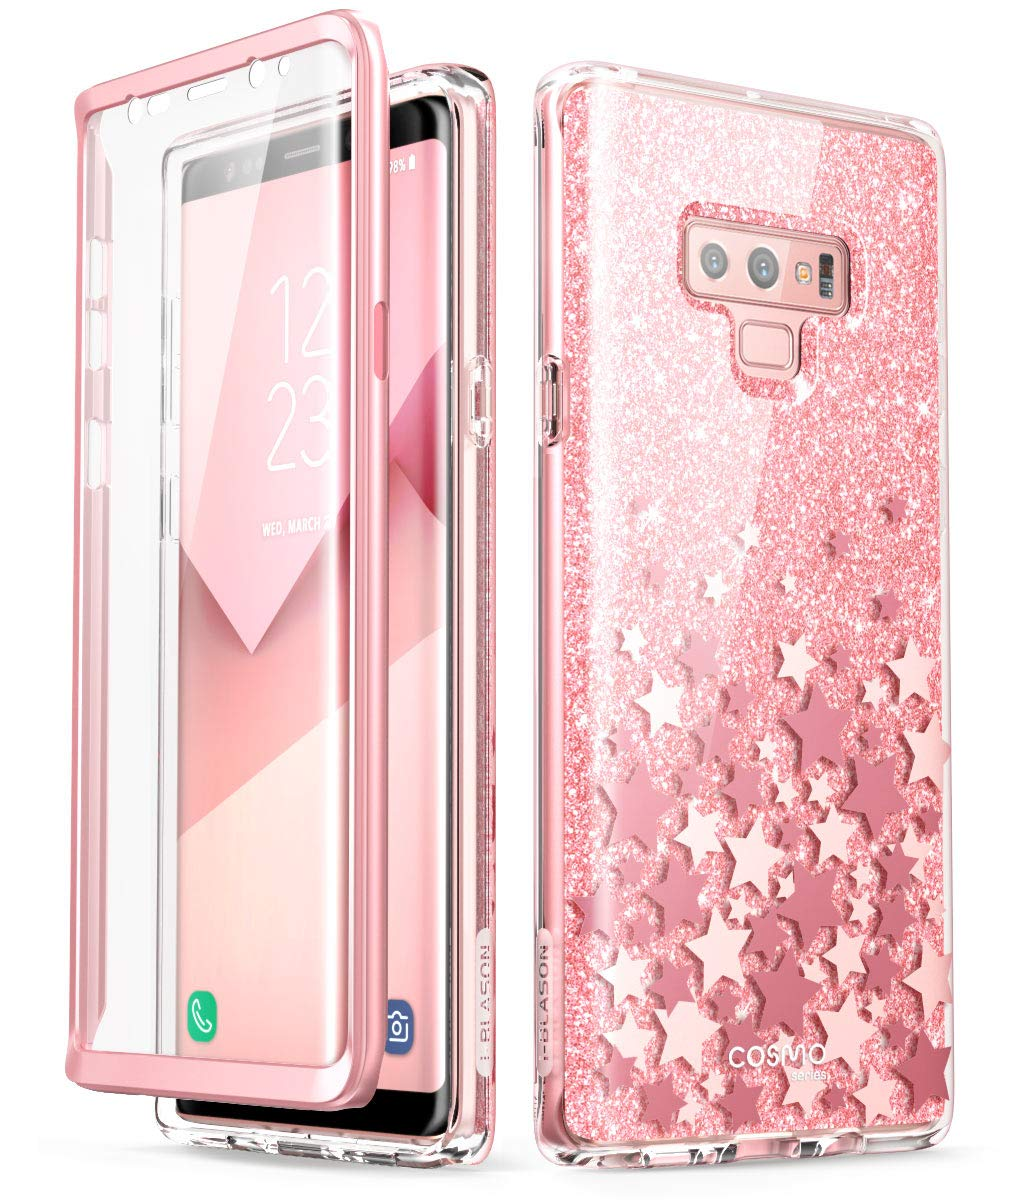 Samsung Galaxy Note 9 Case, [Scratch Resistant] i-Blason [Cosmo] Full-Body Bling Glitter Sparkle Clear Bumper Case with Built-in Screen Protector for Galaxy Note 9 (2018 Release) (Blue)